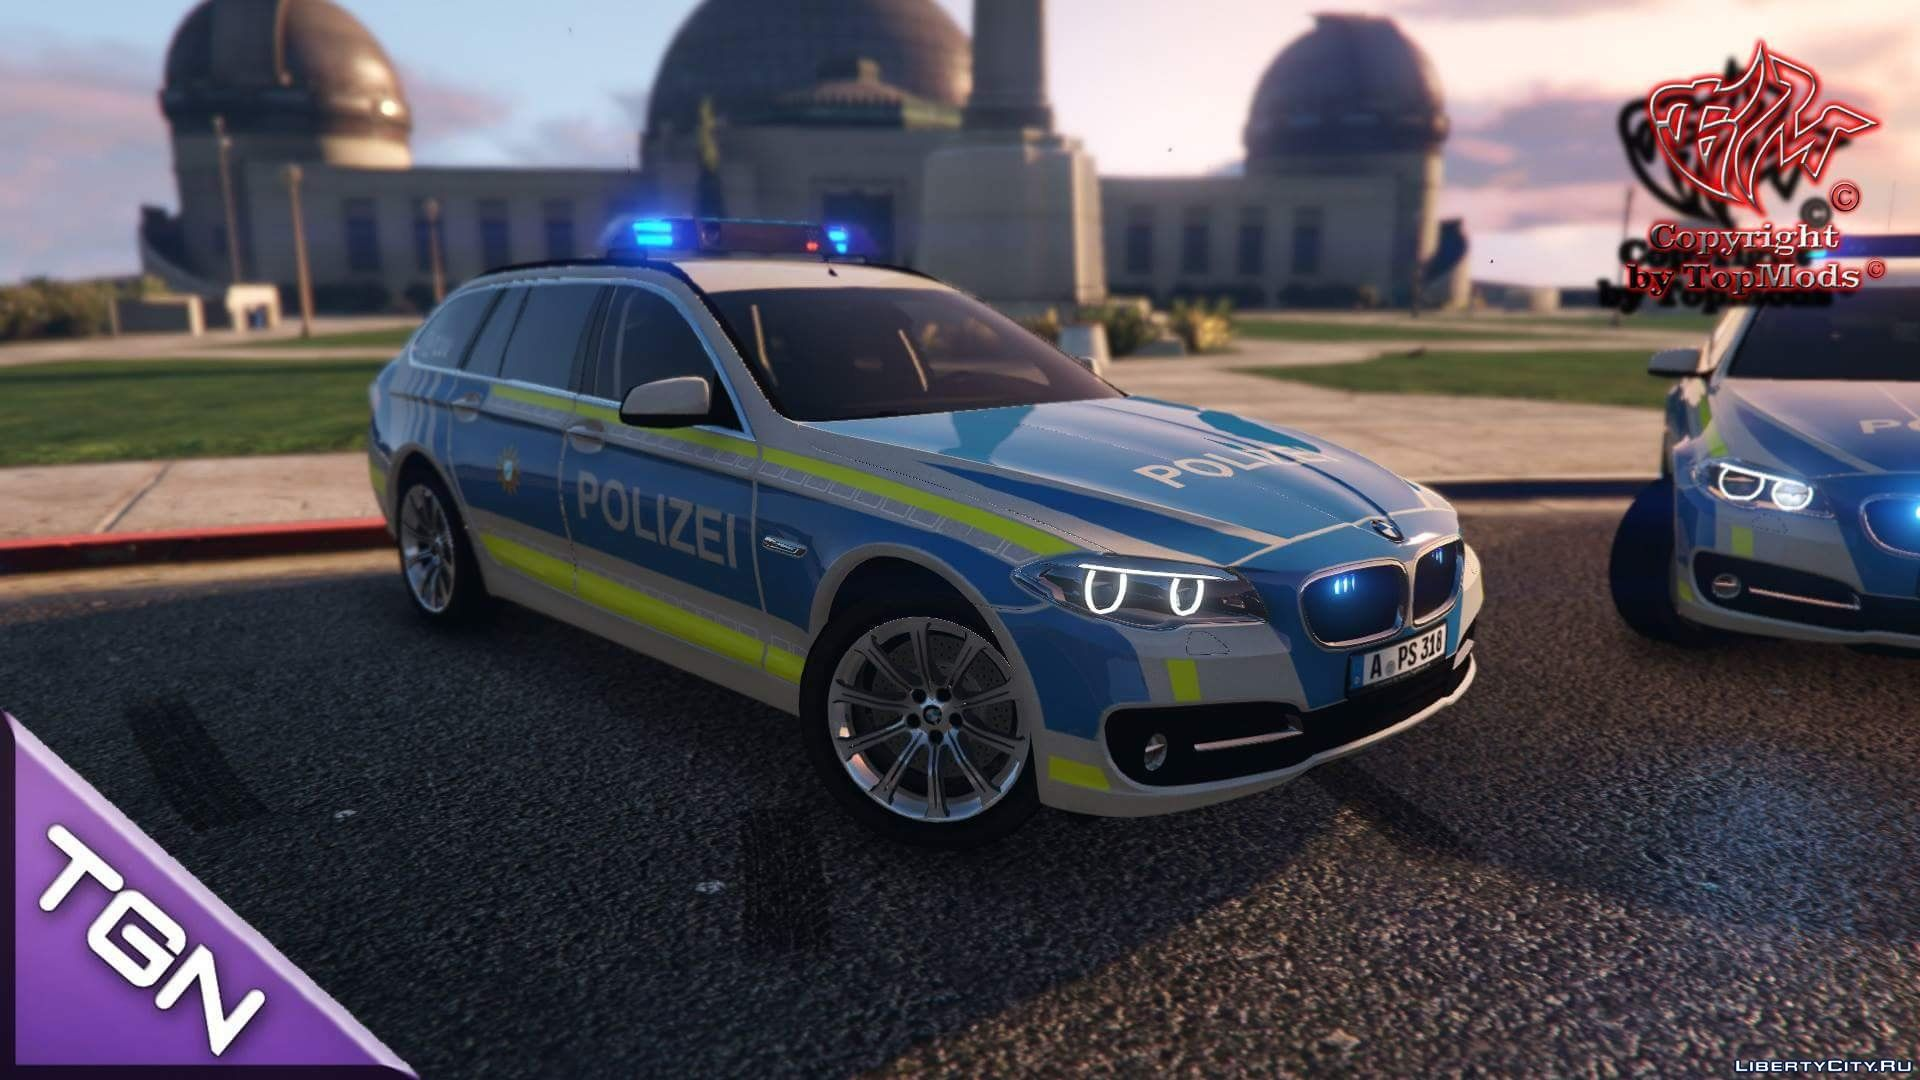 bmw 530d polizei bayern augsburg 2 0 gta 5. Black Bedroom Furniture Sets. Home Design Ideas